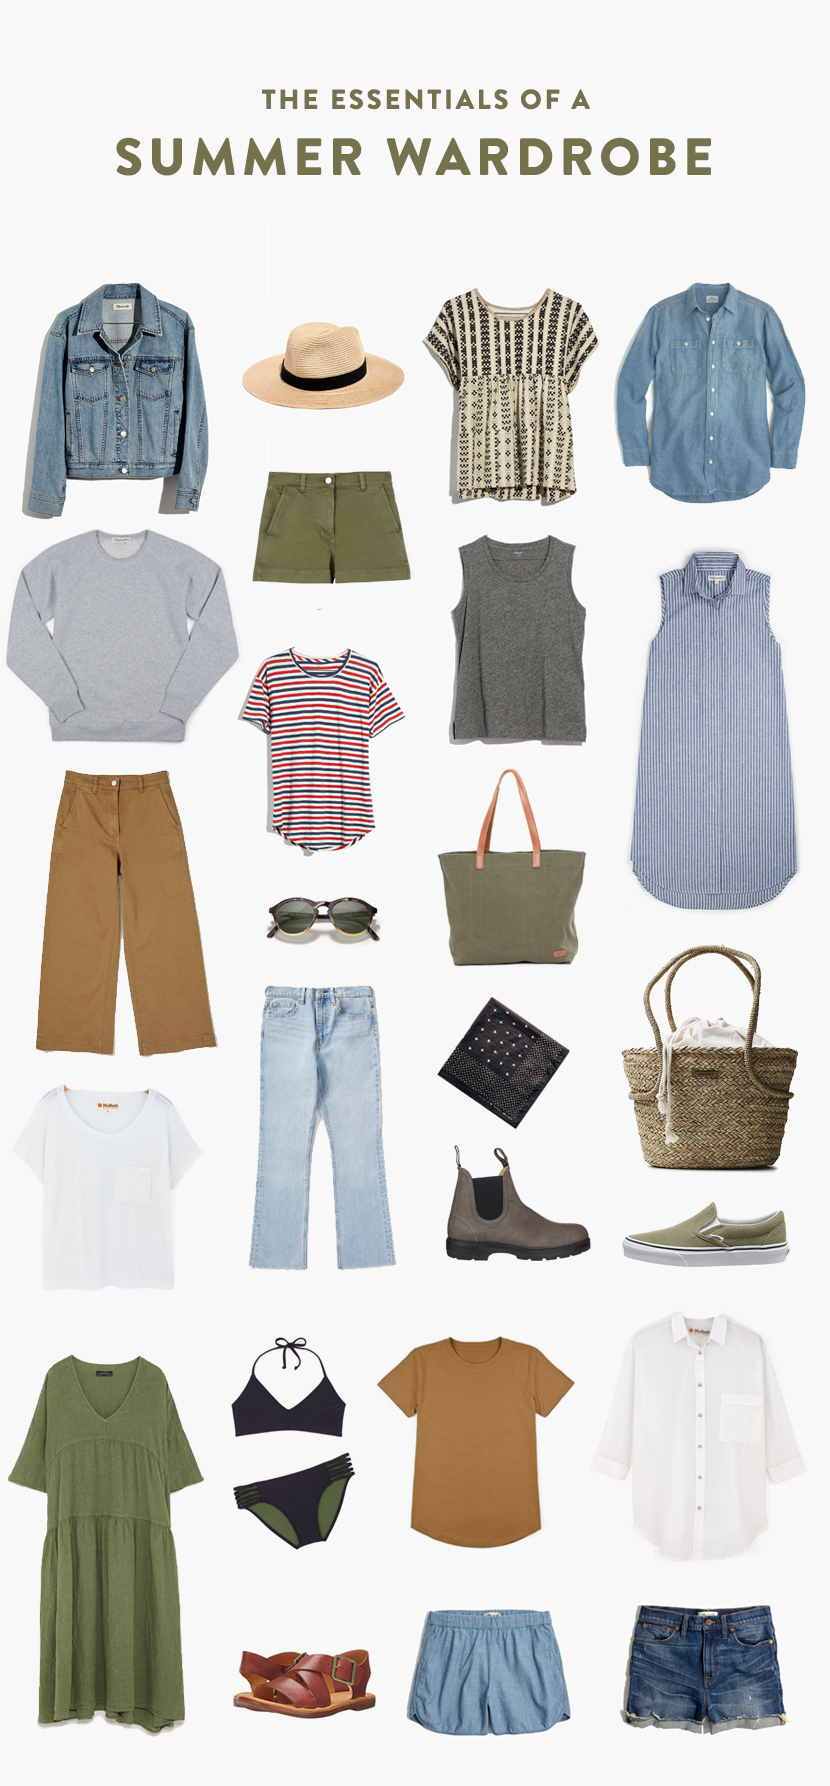 Summer Wardrobe Essentials. The Basics you need for a basic summer wardrobe for all days of the season.